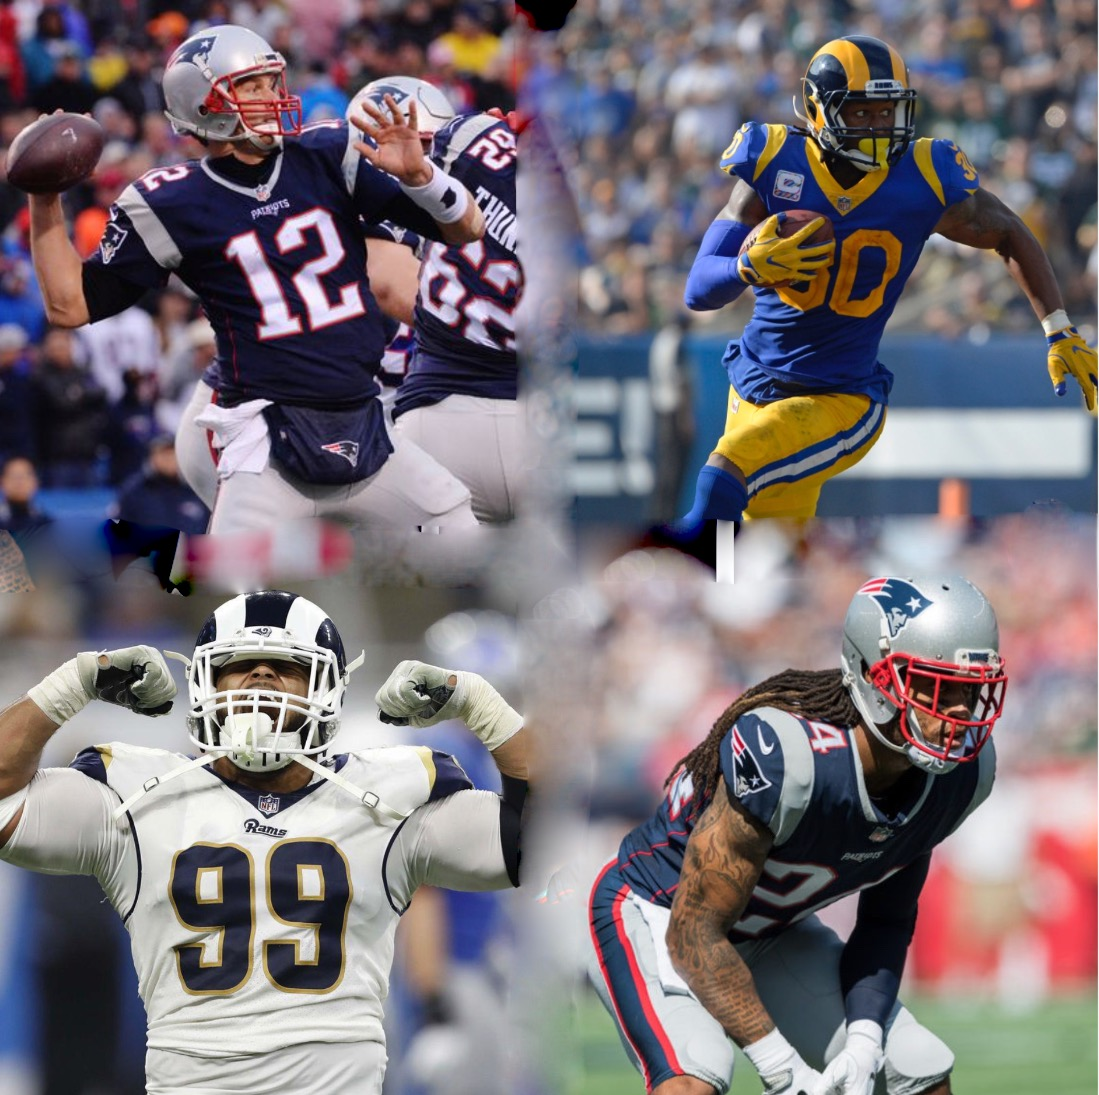 f3ed888d Suite Sports: Super Bowl LIII Preview: A Rematch, Young vs. Old, Two ...